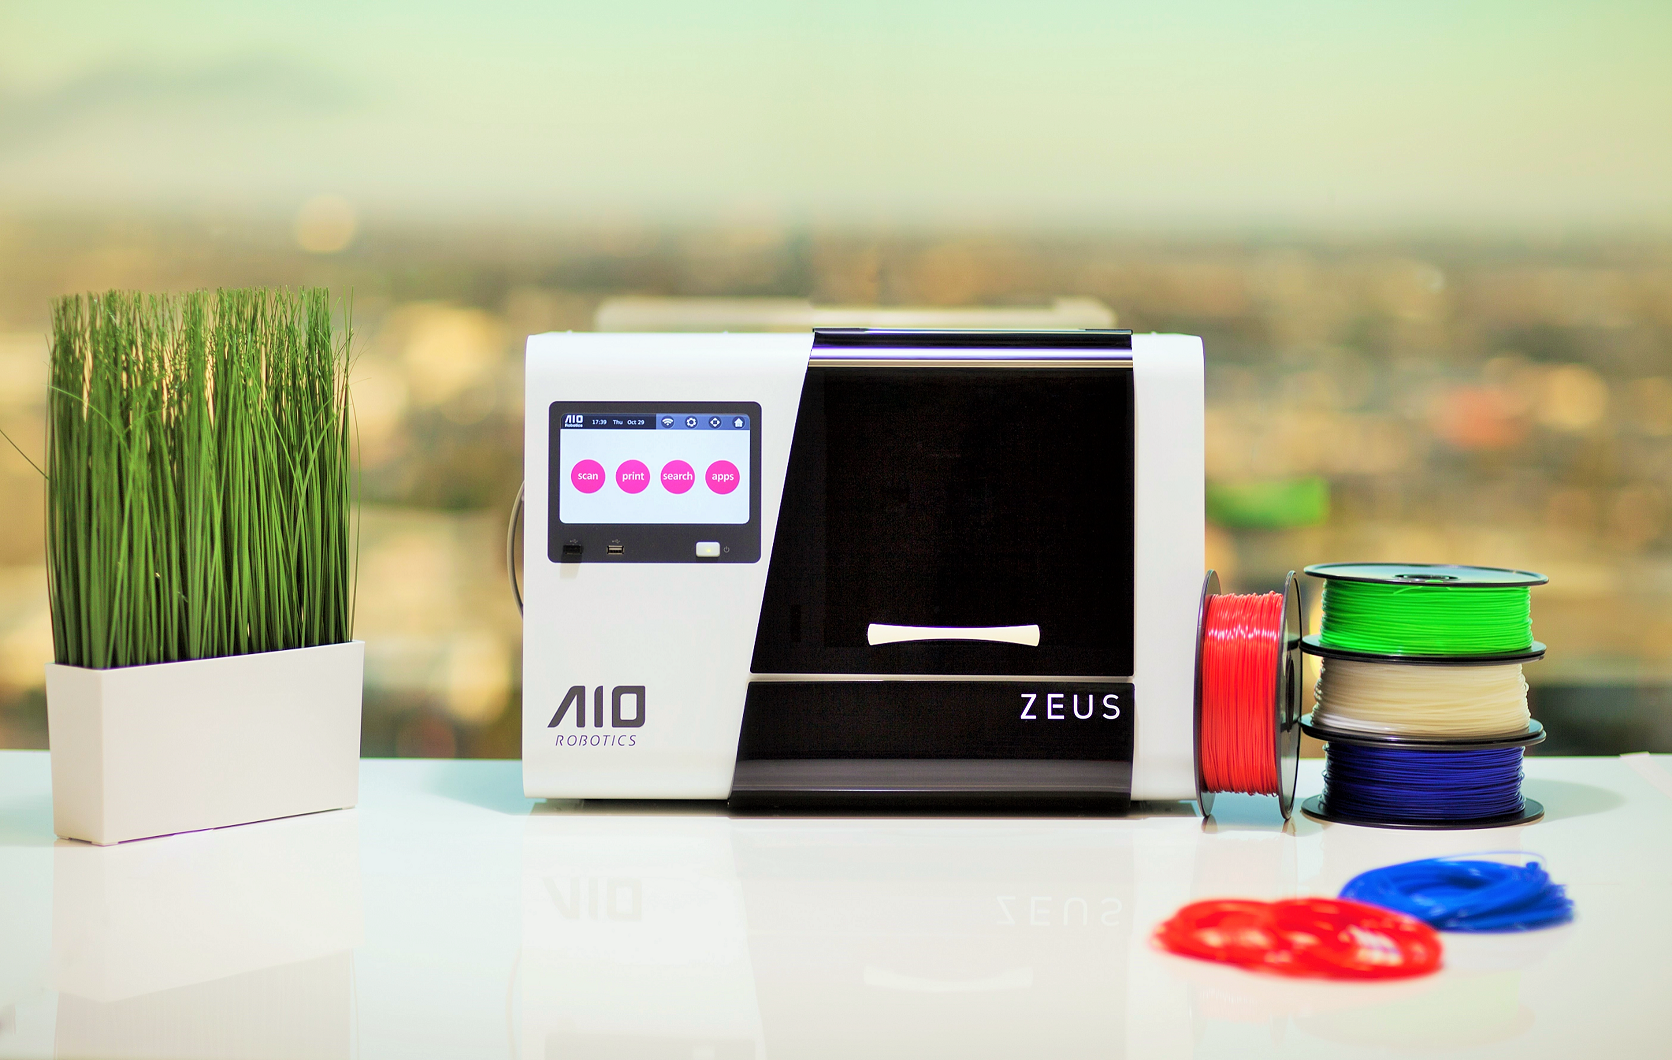 Zeus 3d Printer Editor Scanner From Aiorobotics On Tindie